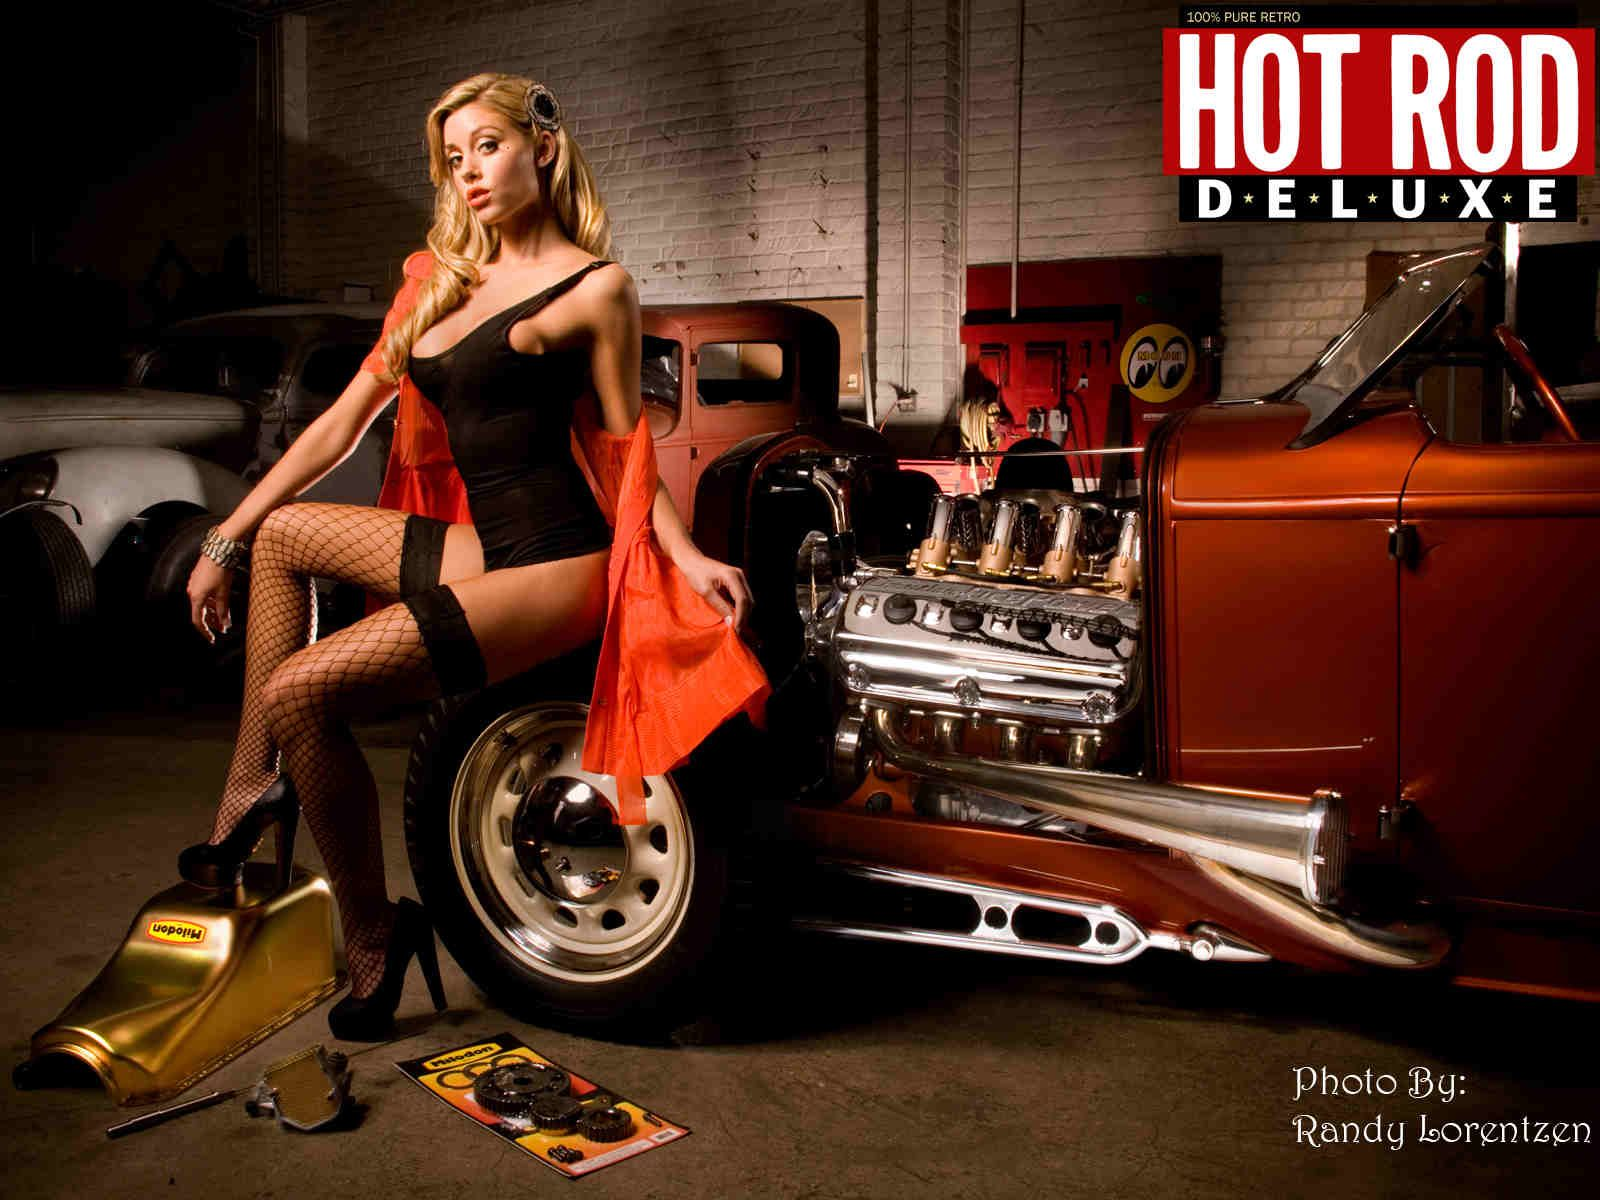 Muscle Cars, Hot Rods, and Pretty Country Women!